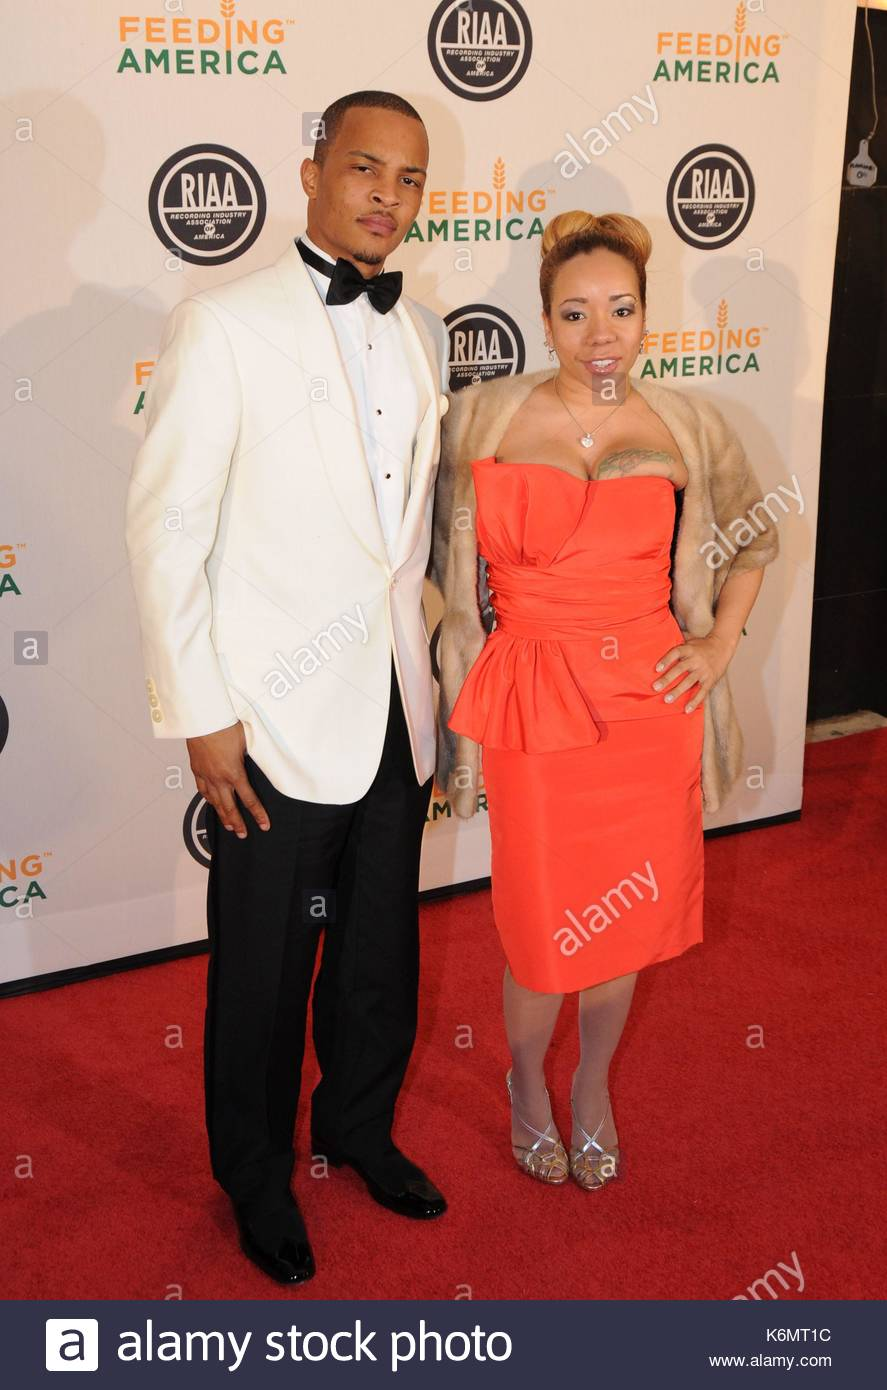 Rapper Ti Rapper Ti Walks The Red Carpet In Washington Dc With A Girl On His Side